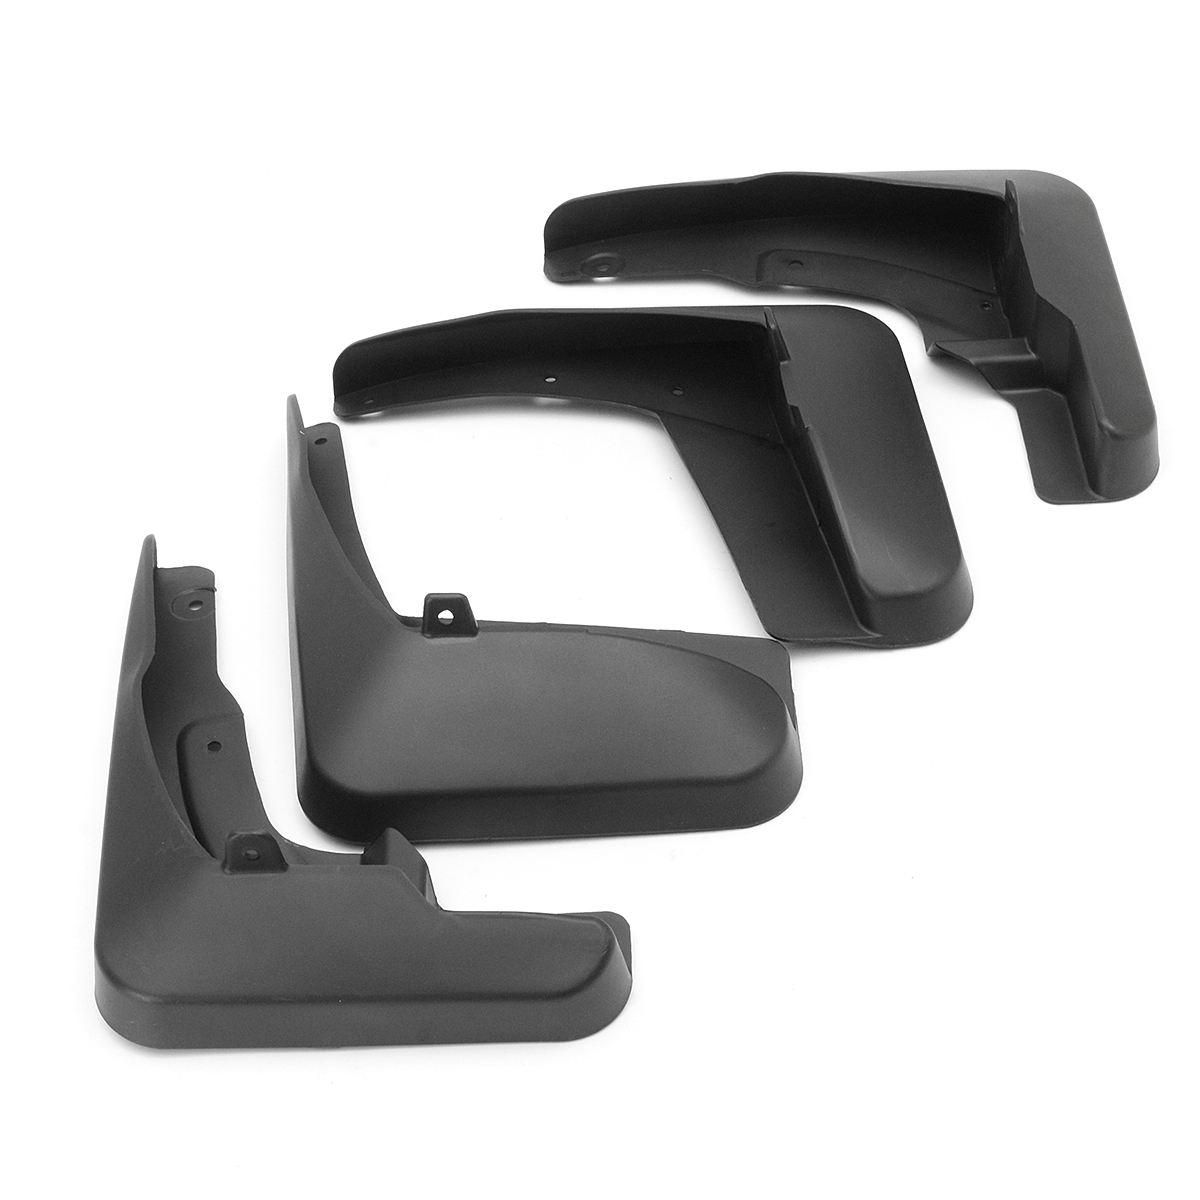 Mud Flaps Splash Mud Guards Front Rear Fender For TOYOTA VENZA Mud Flaps 2009-2016